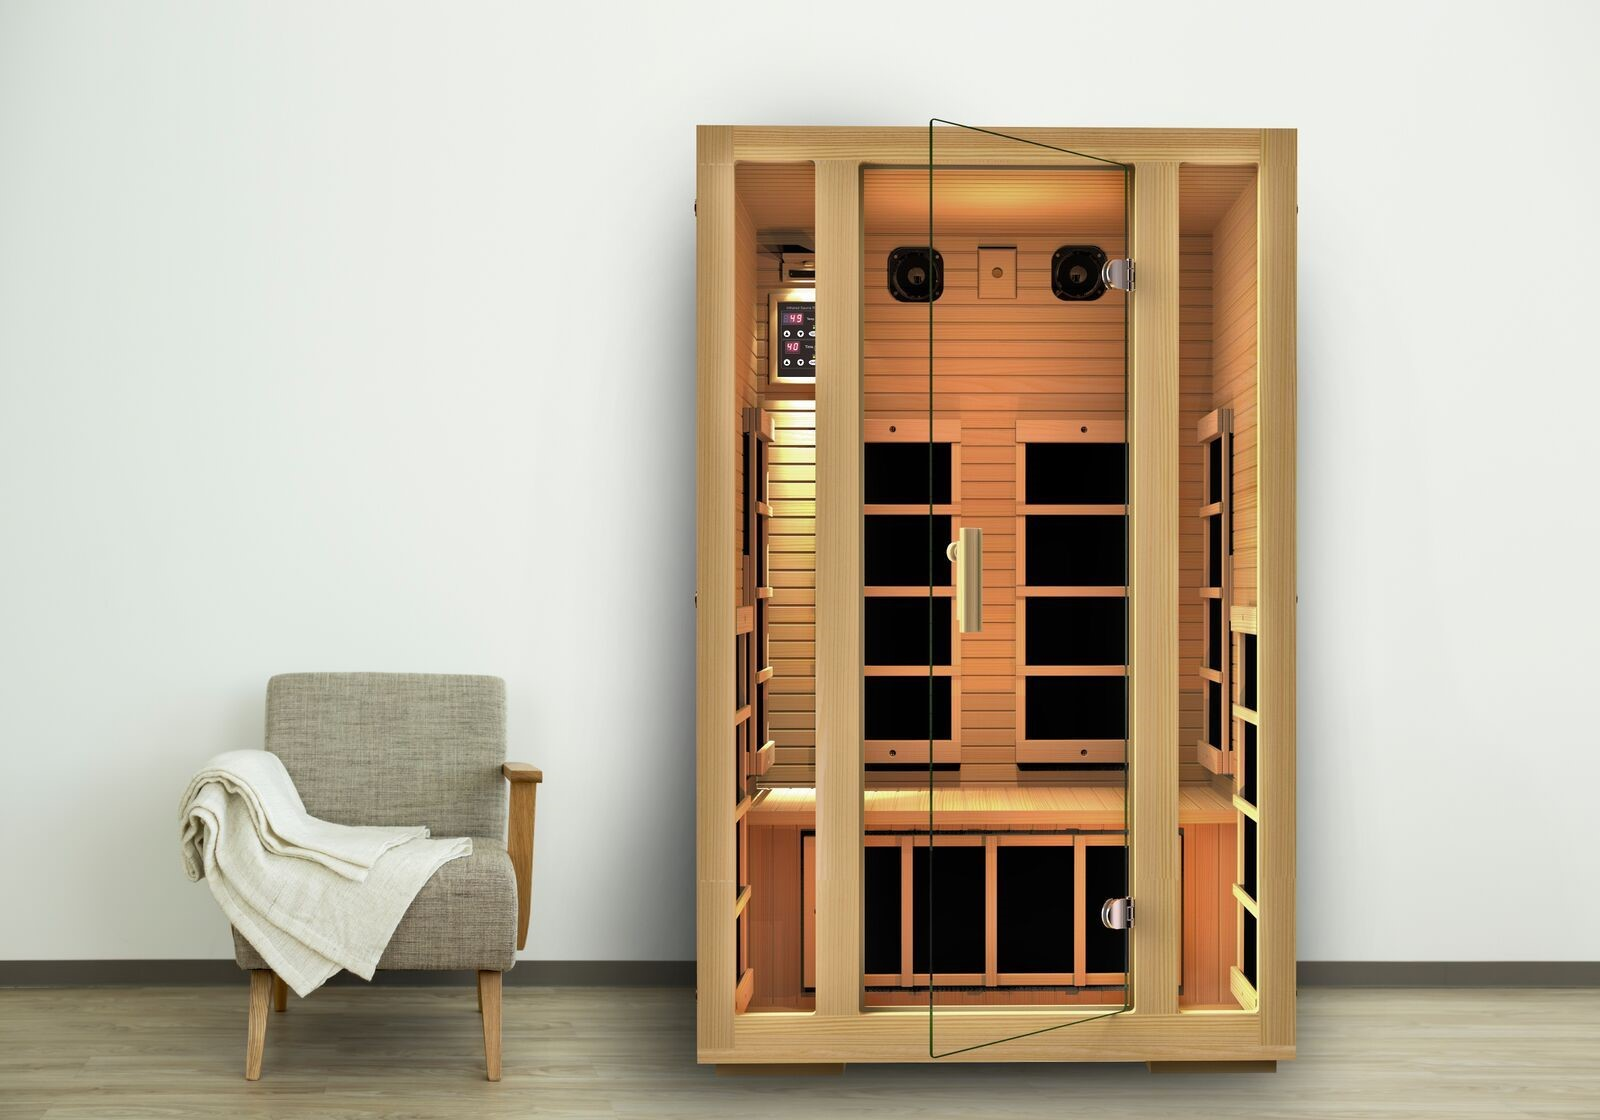 You Should Buy an Infrared Sauna to Reduce Toxin Levels in Your Body